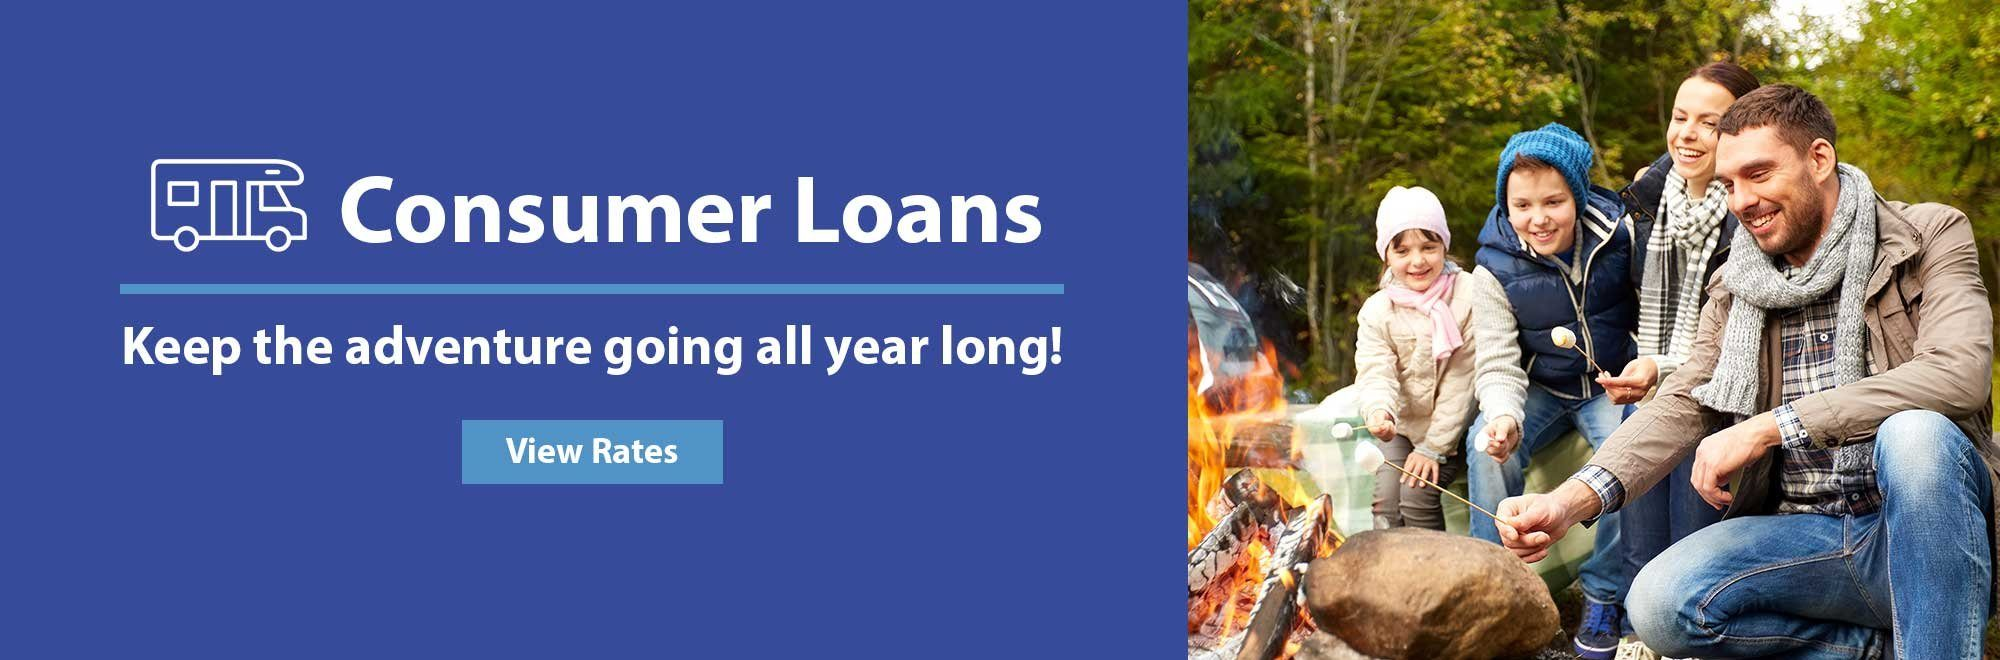 Consumer Loans. Keep the adventure going all year long. View rates.